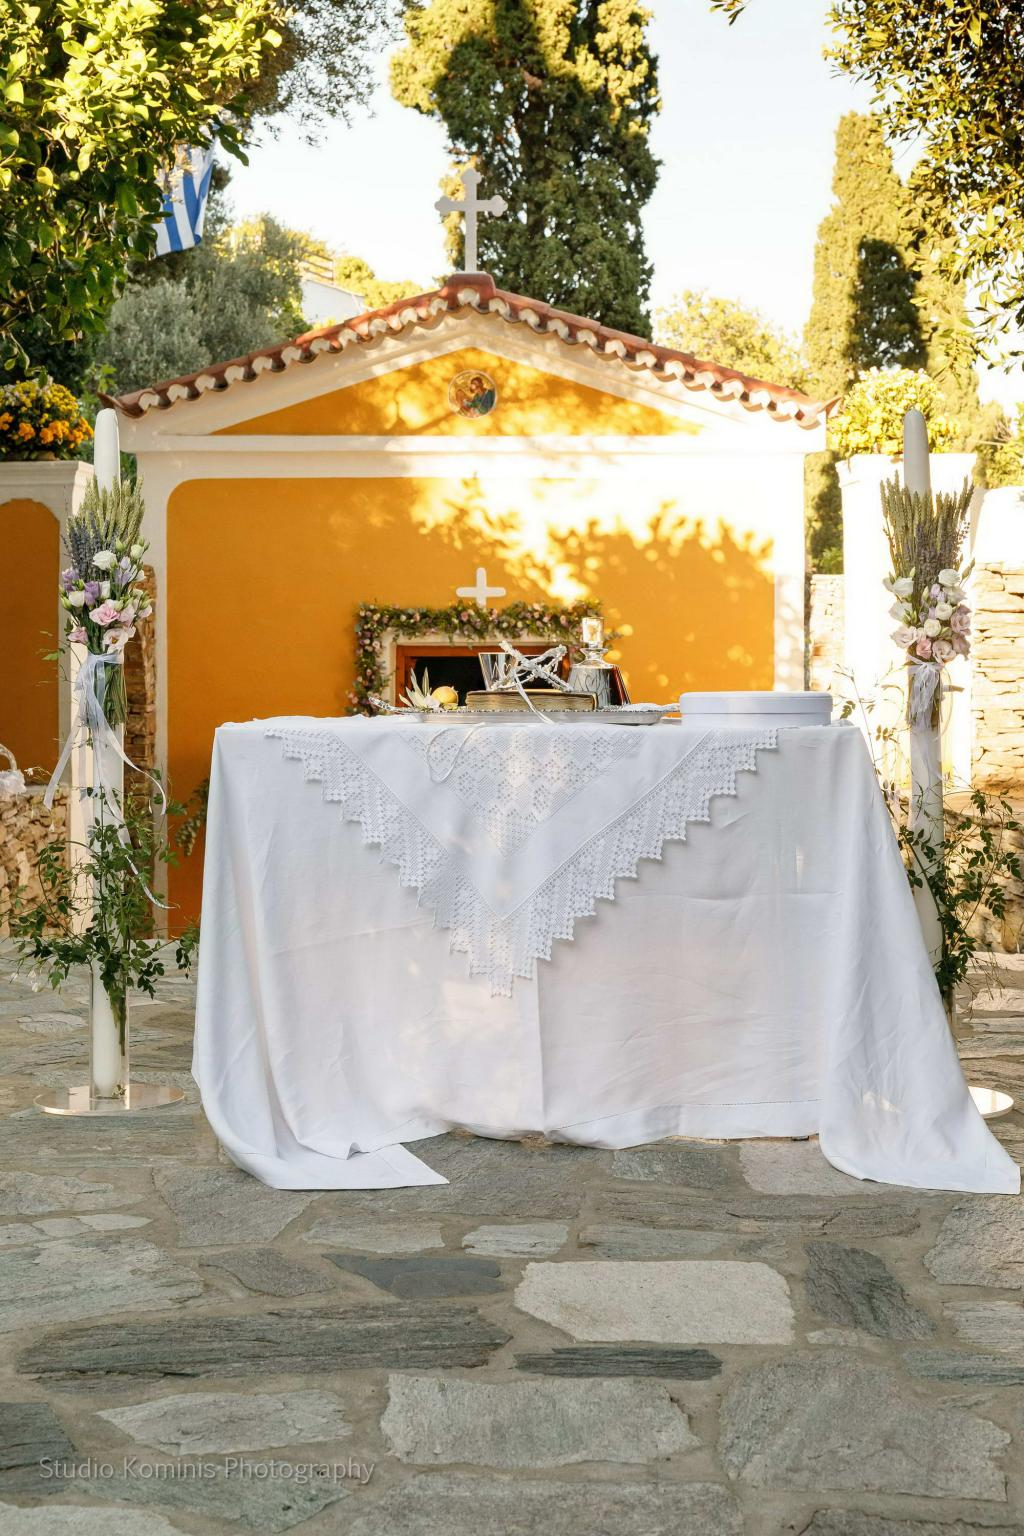 N&A Andros wedding - Image 1